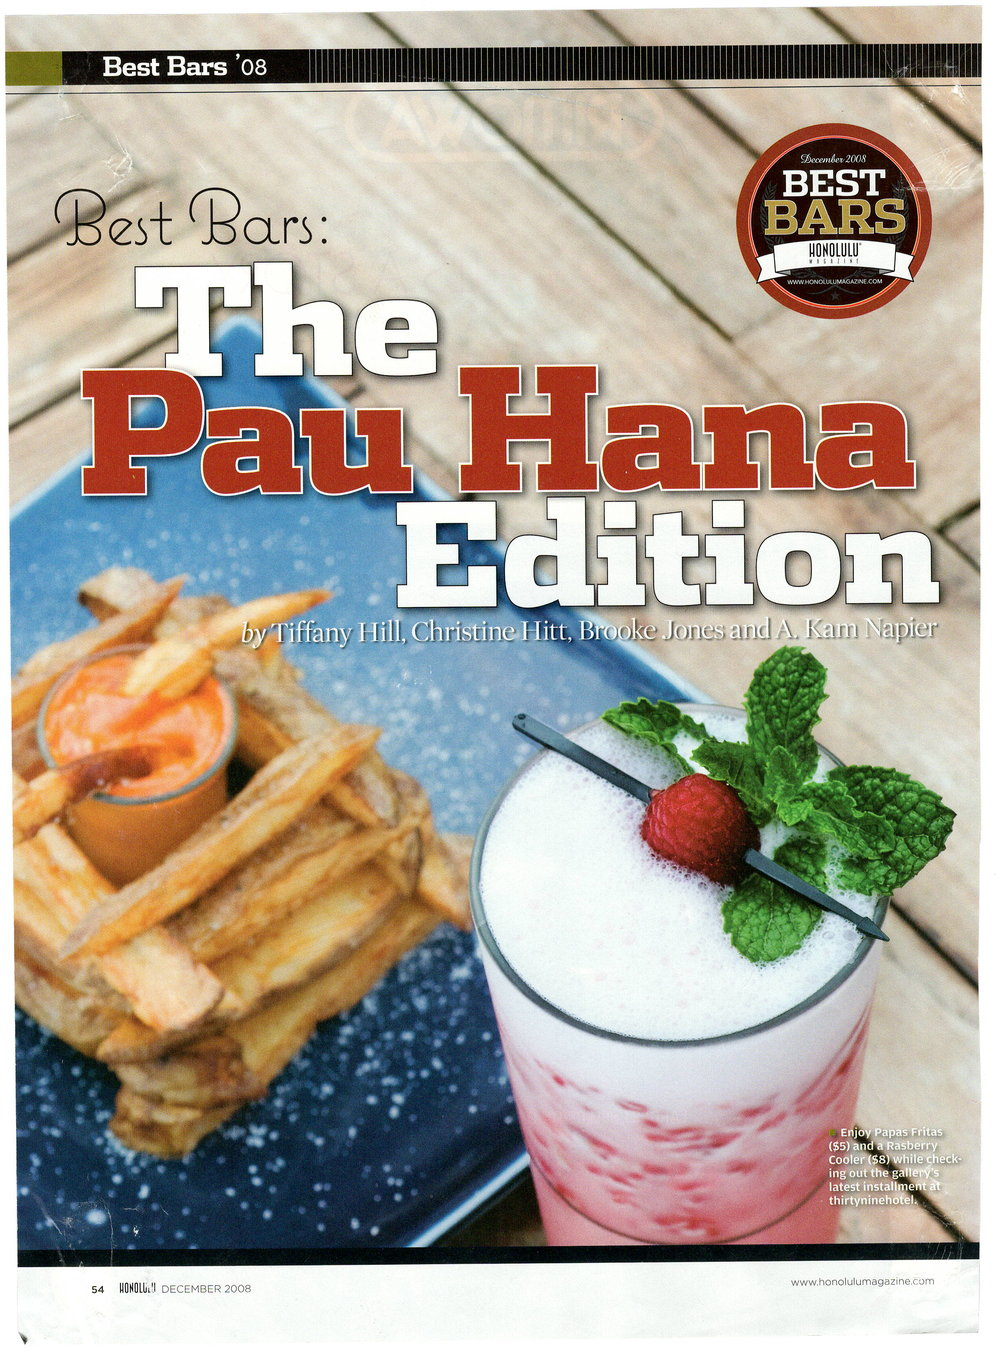 HonoluluMagazineBestBars'08Cover.jpeg